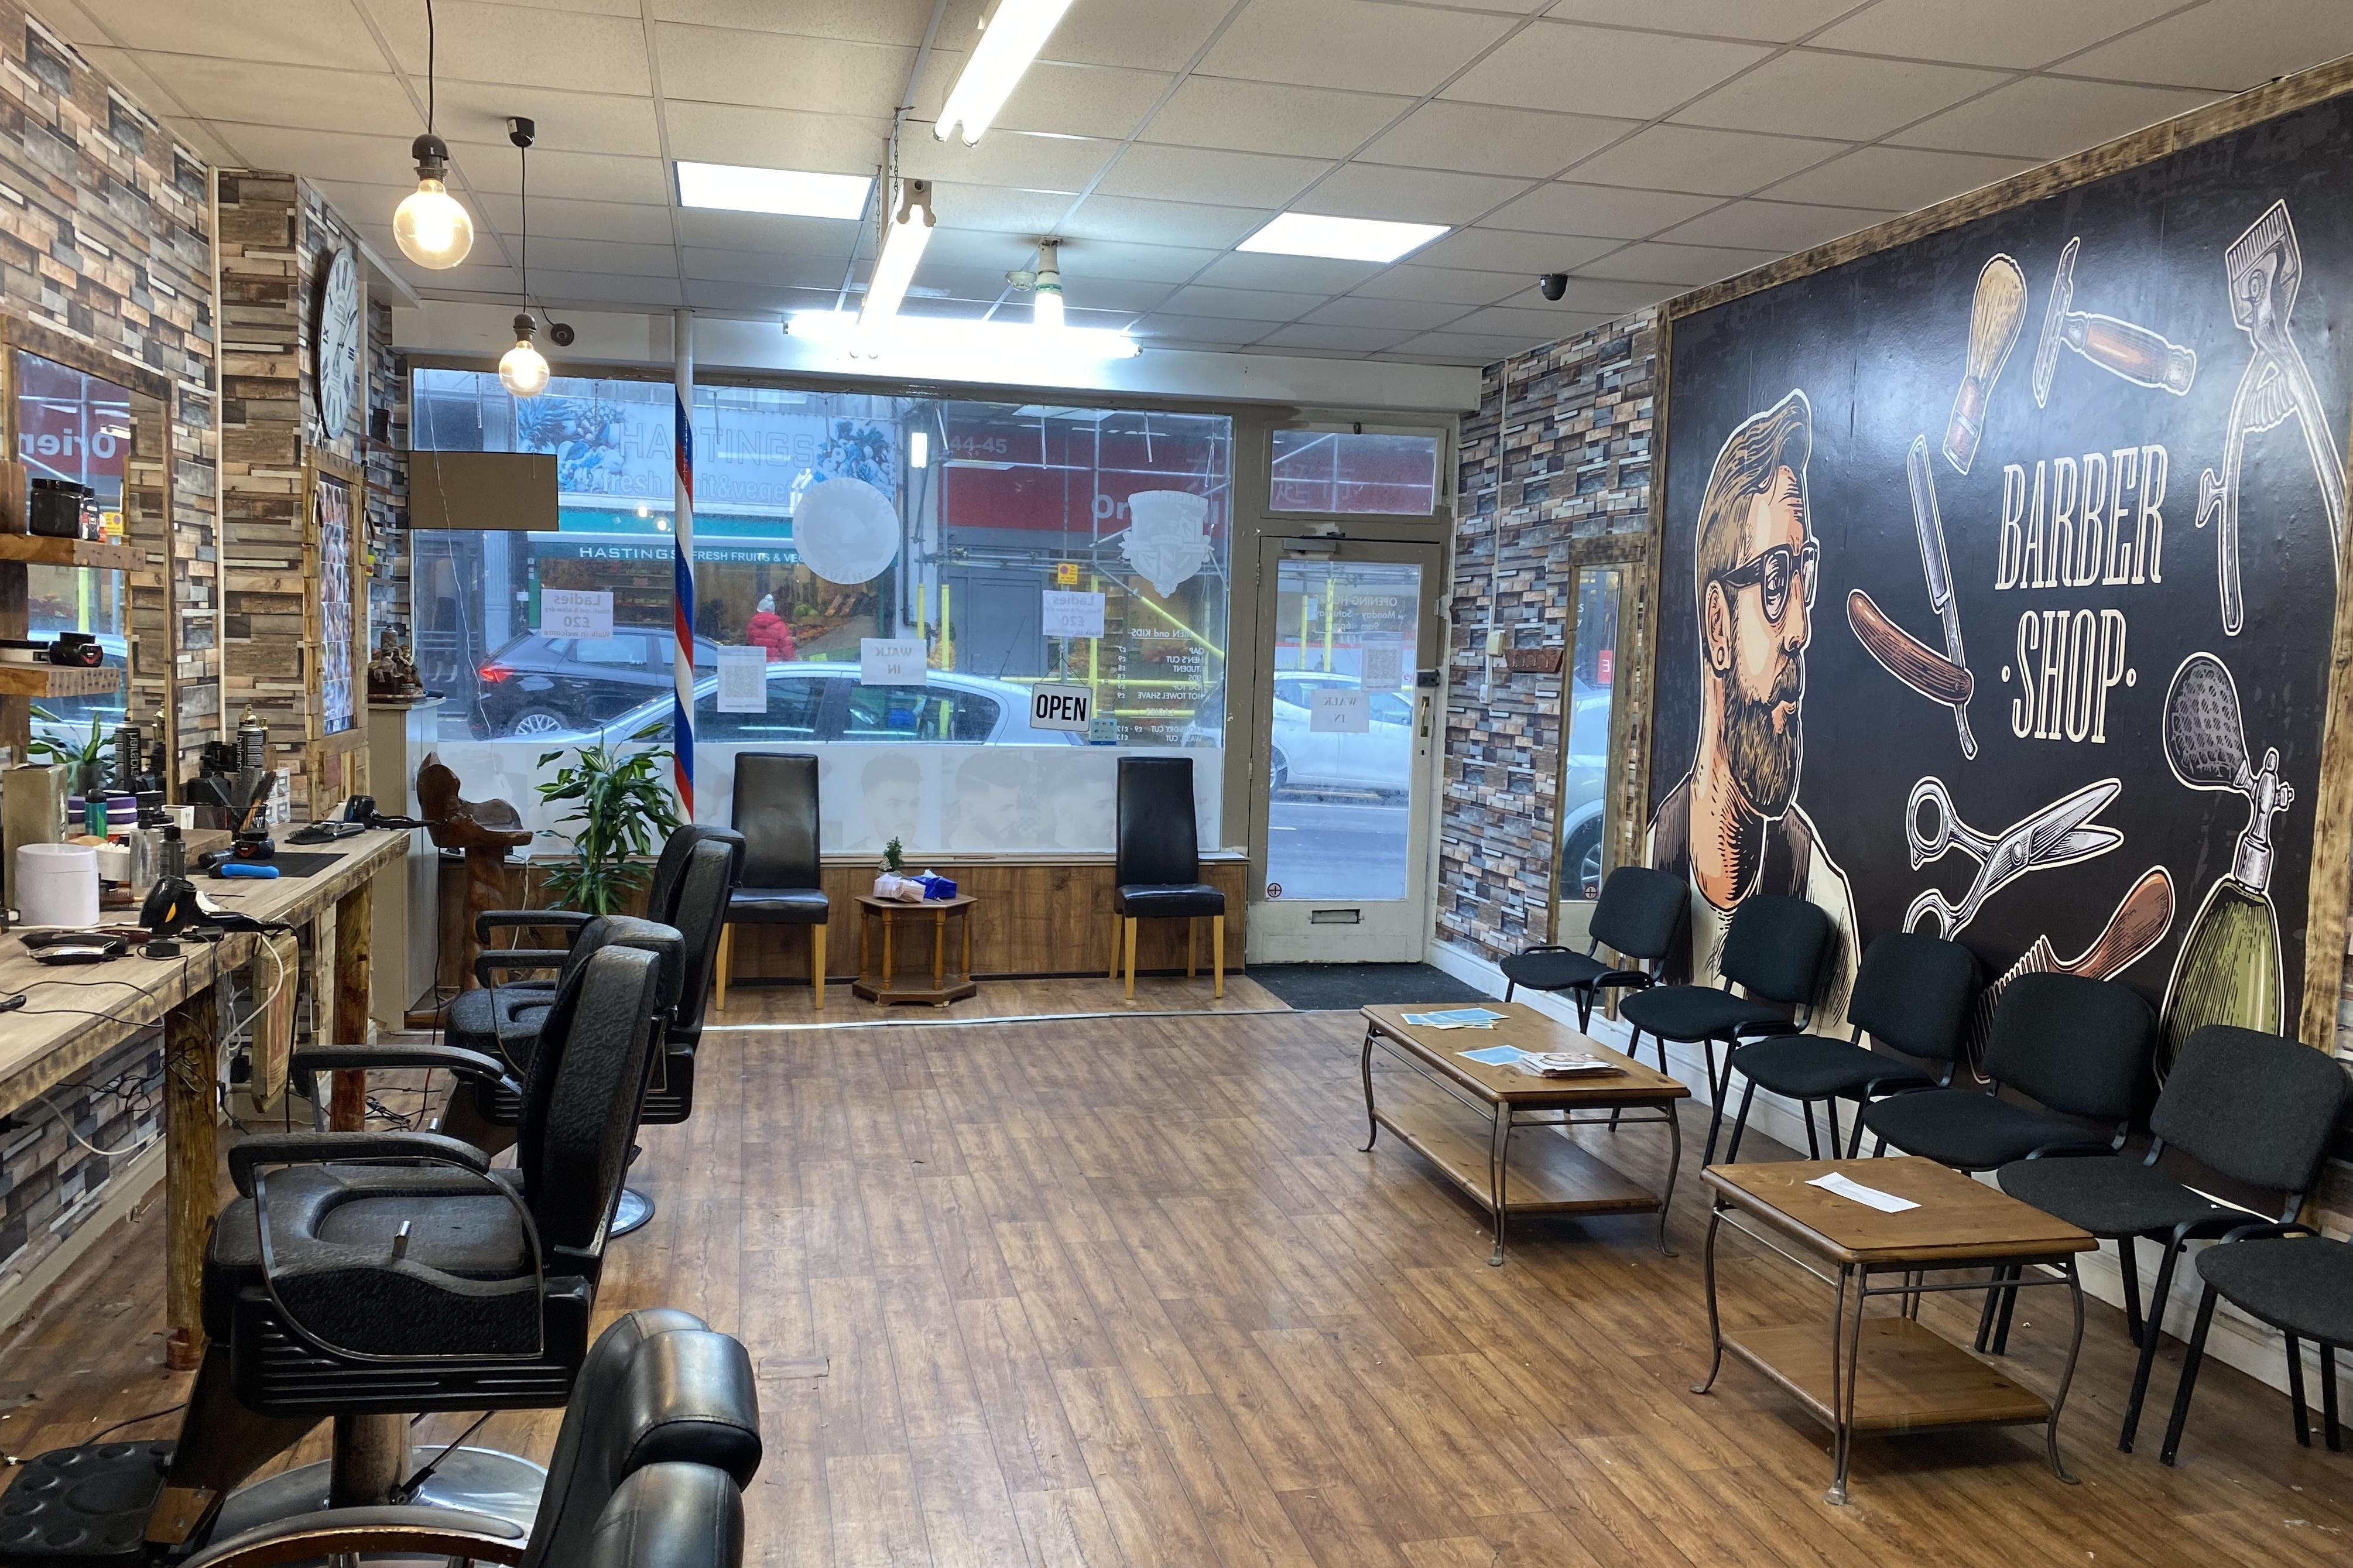 200 Queens Road, Hastings, Investment / Retail For Sale - IMG_4335.JPG